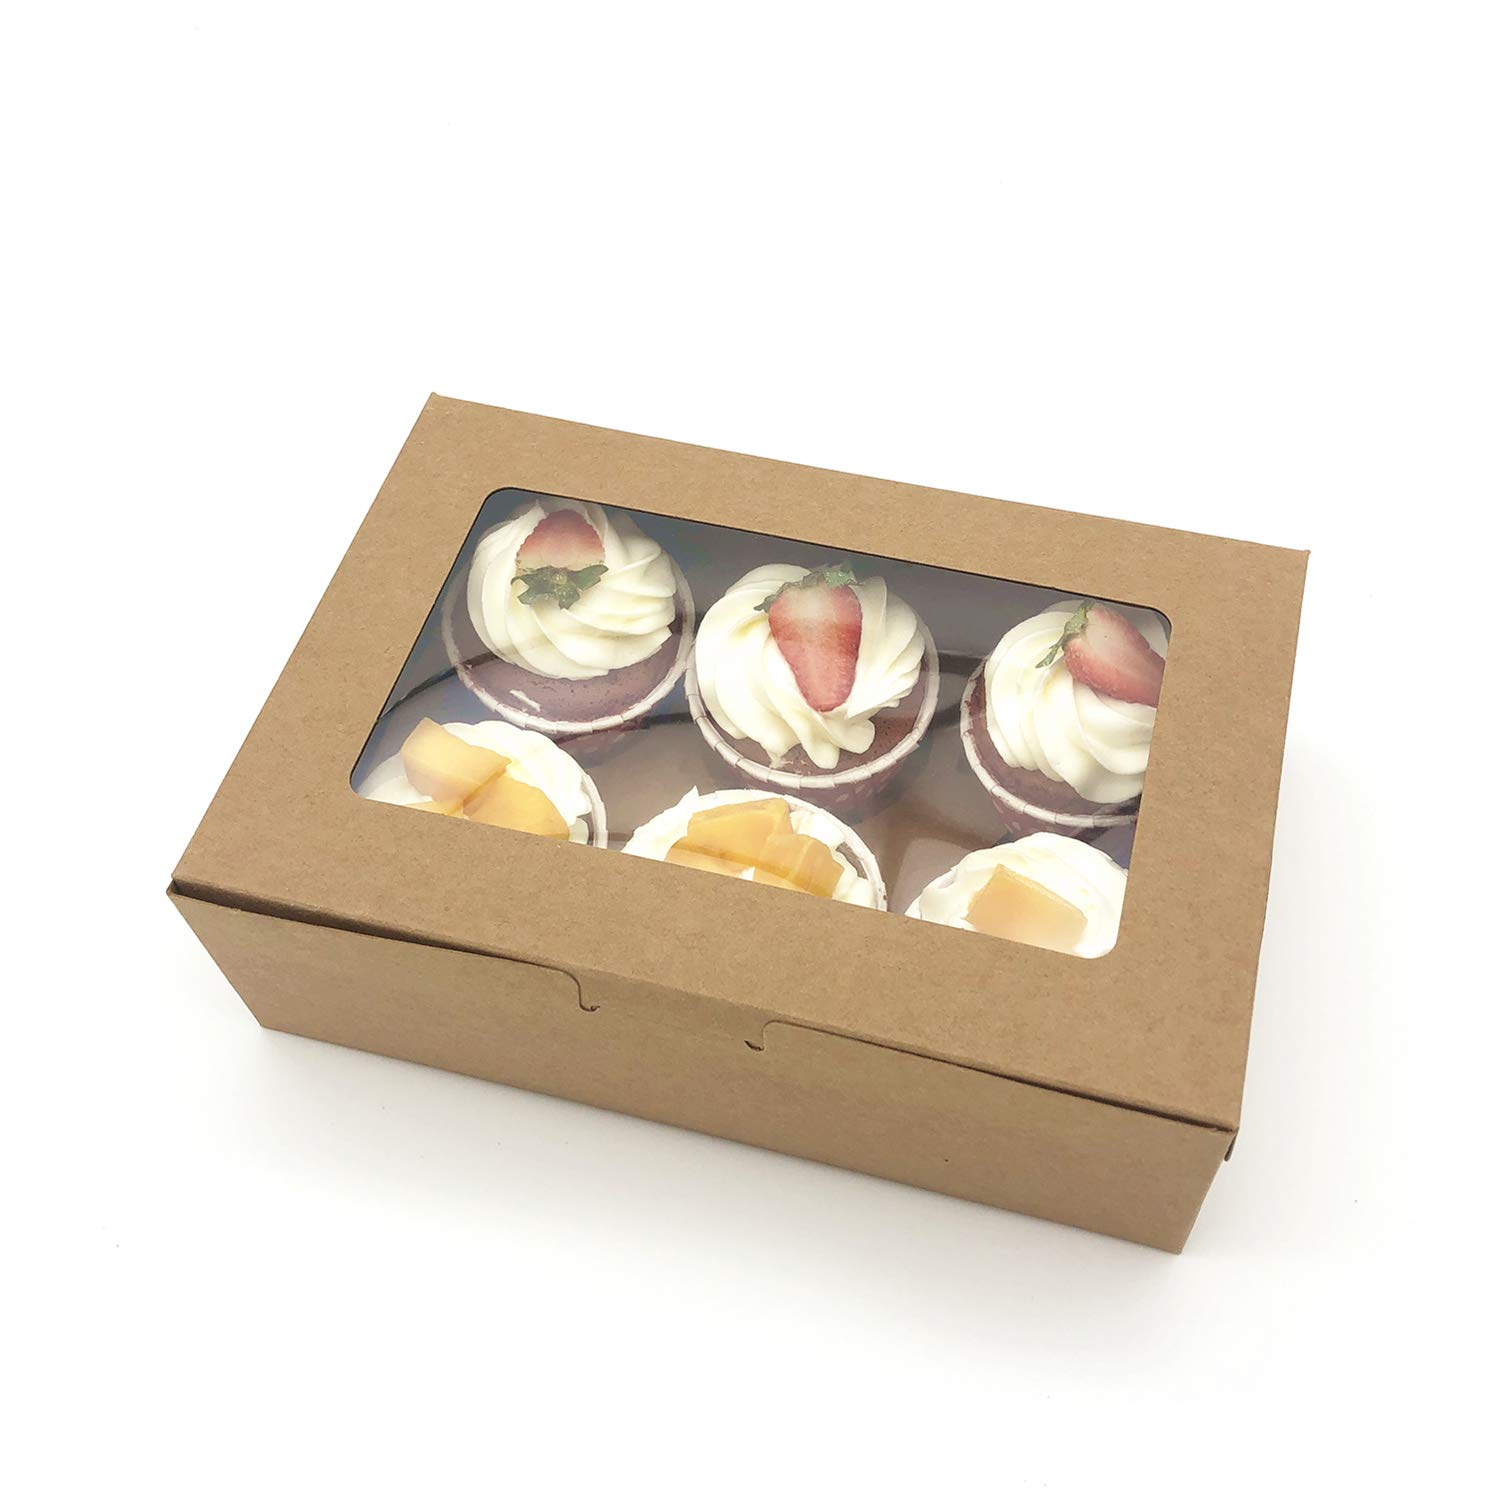 30-Set Cupcake Boxes with Inserts and Window Fits 6 Cupcakes, 9.4'' x 6.3'' x 3'', Brown Food Grade Kraft Cookie Gift Boxes, Treat Boxes for Cookies, Bakeries, Muffins and Pastries by Aglahome (Image #7)